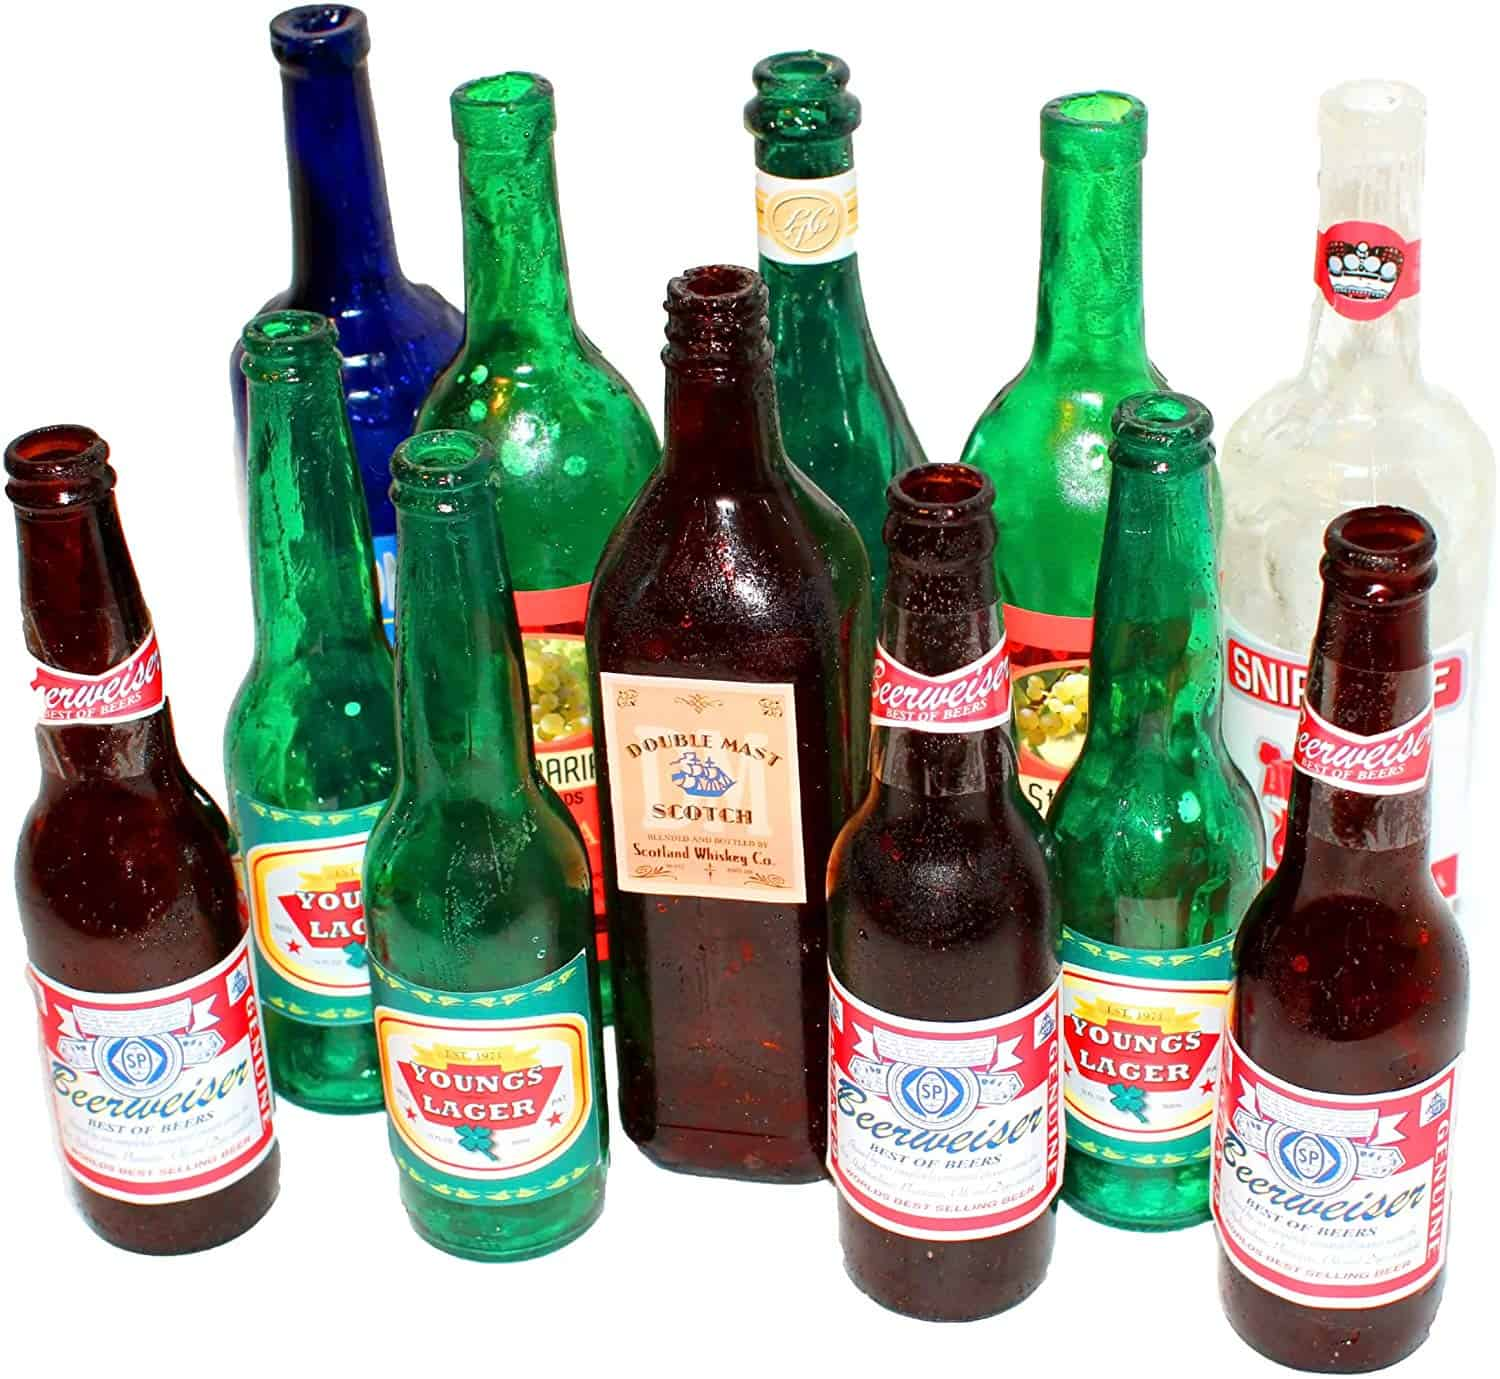 Not your regular beer bottles filled up with your lovable beer and also not made up of sugar. These breakable prop beer bottles look very similar to the real brand's bottles but are made for another type of fun activity. These bottles will provide realism to your bar fight filming by using these SMASHProps Breakaway Props bottle.